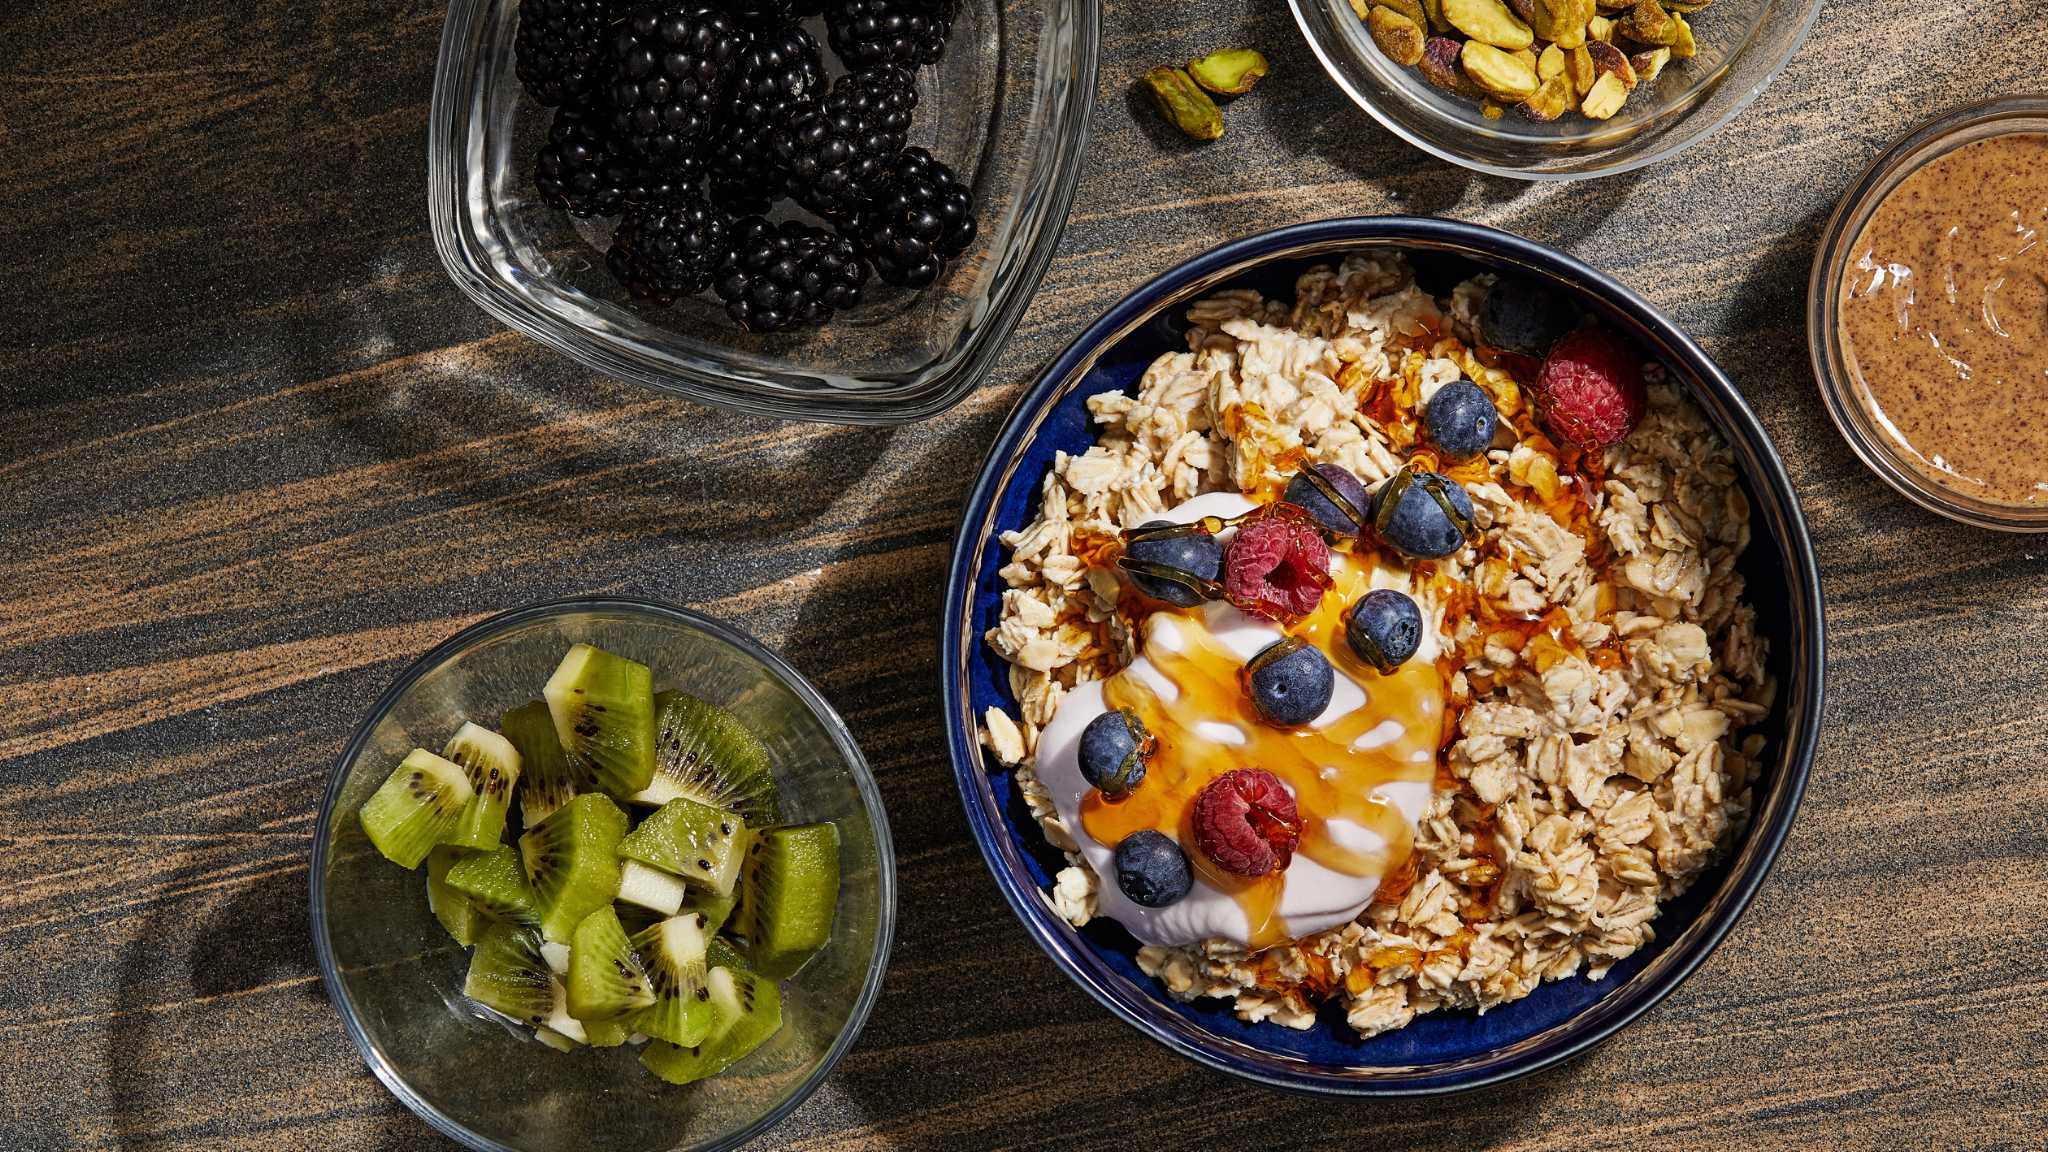 These customizable overnight oats are your go-to, no-cook summer breakfast